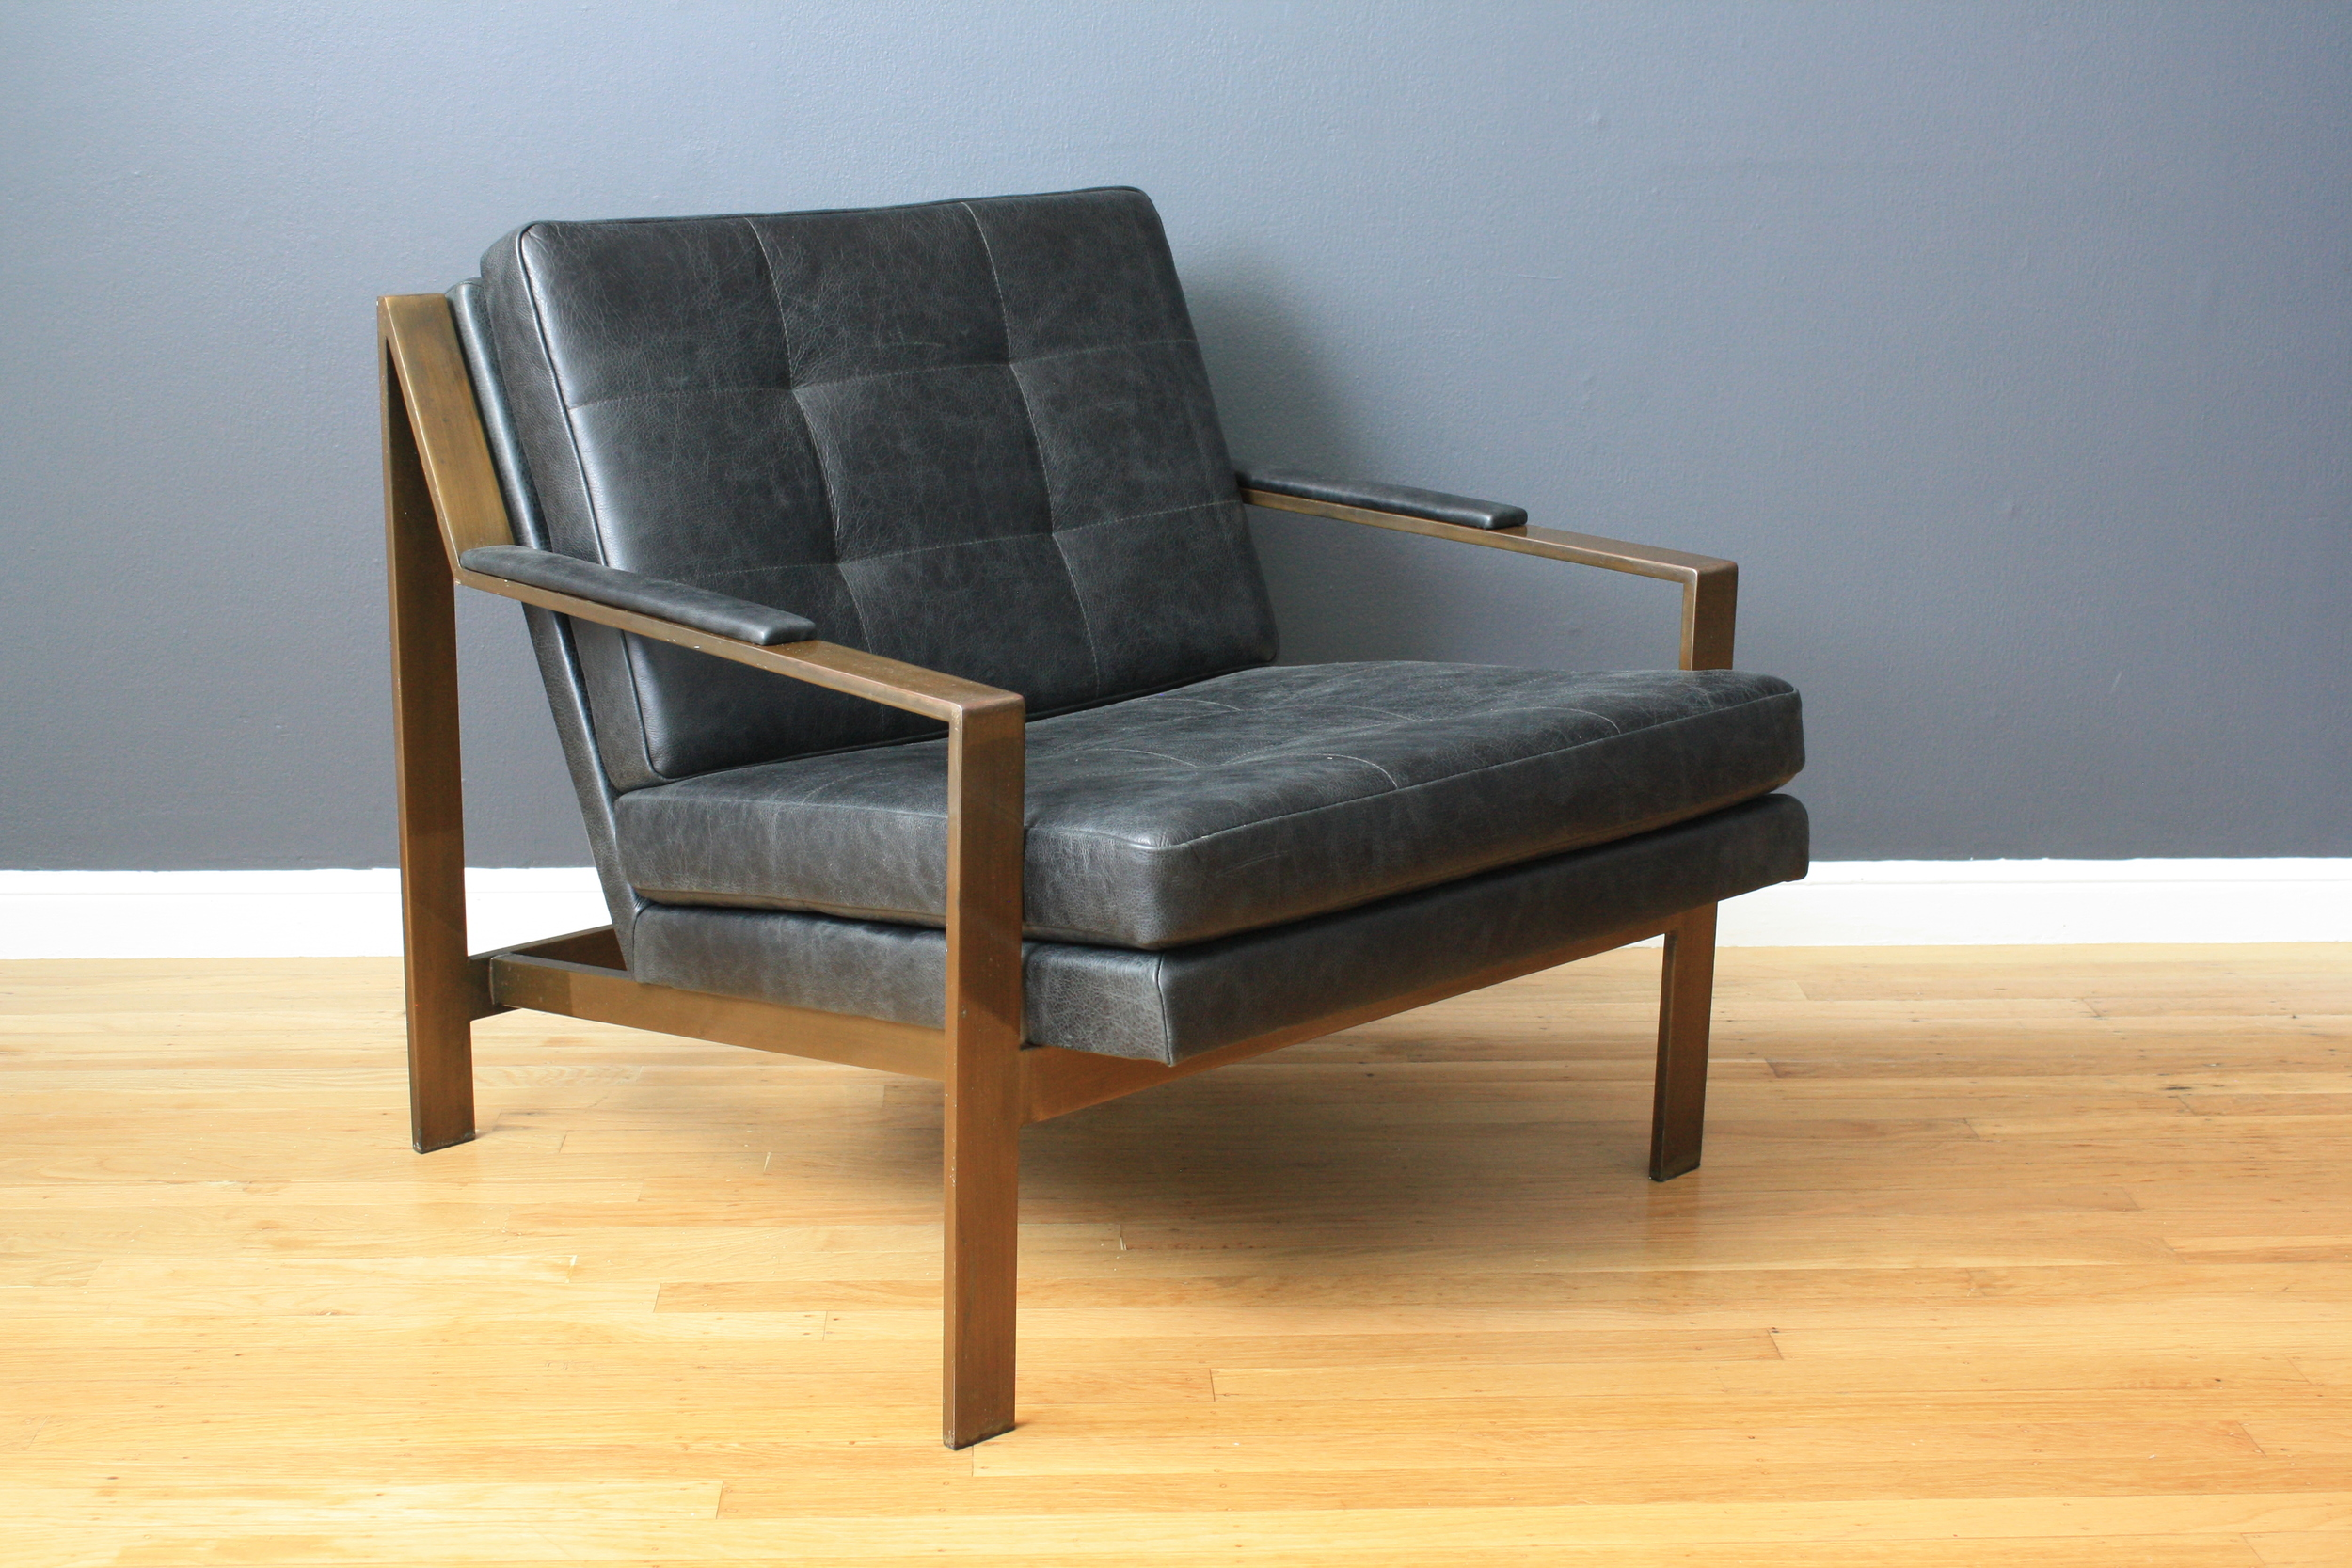 Copy of Vintage Mid-Century Milo Baughman Lounge Chair